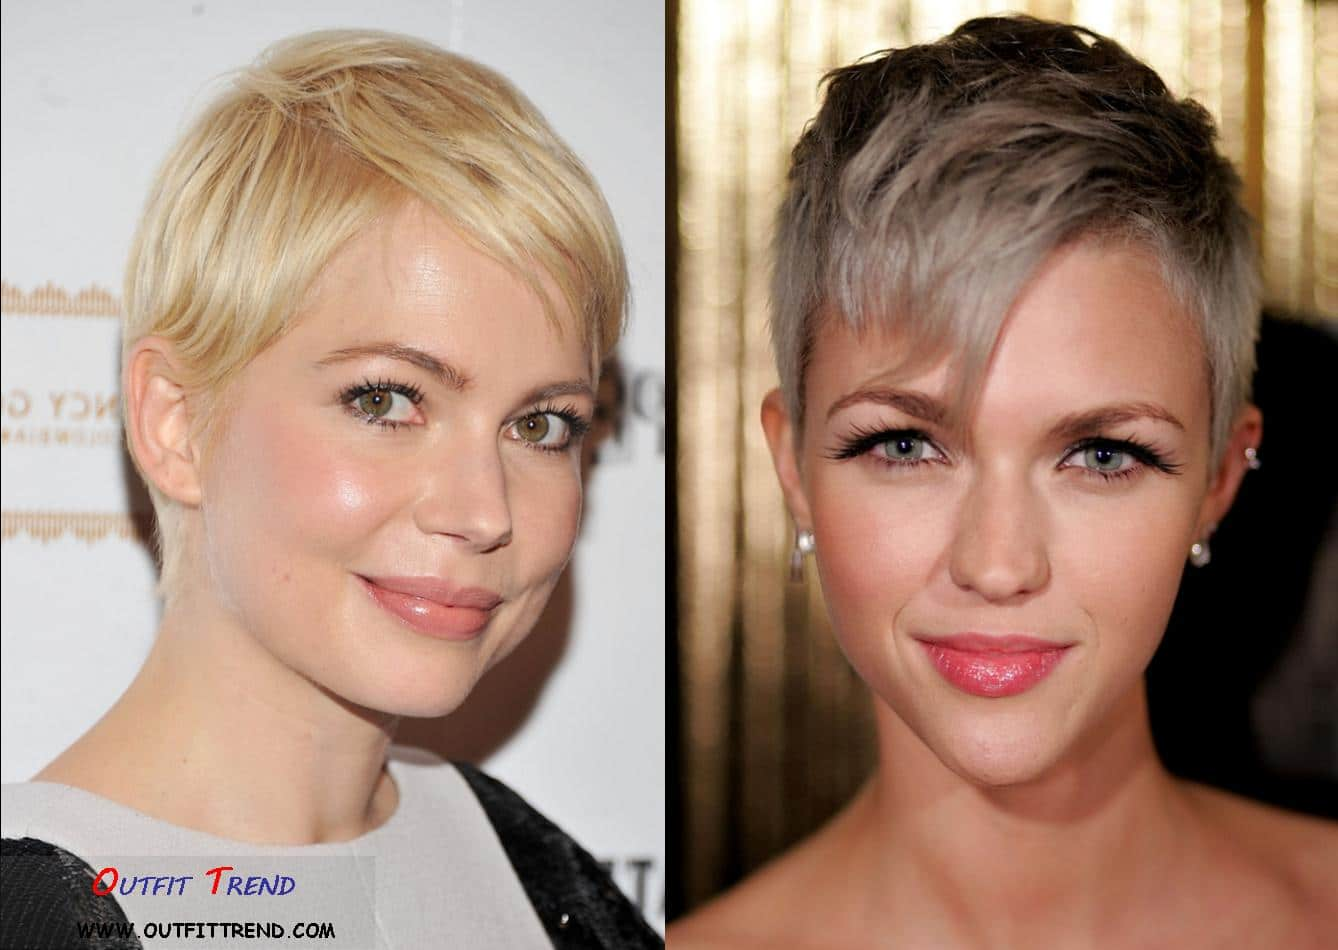 Stylish-Short-Hairstyles 14 Top Celebrities Inspired Short Hairstyles To Follow This Year